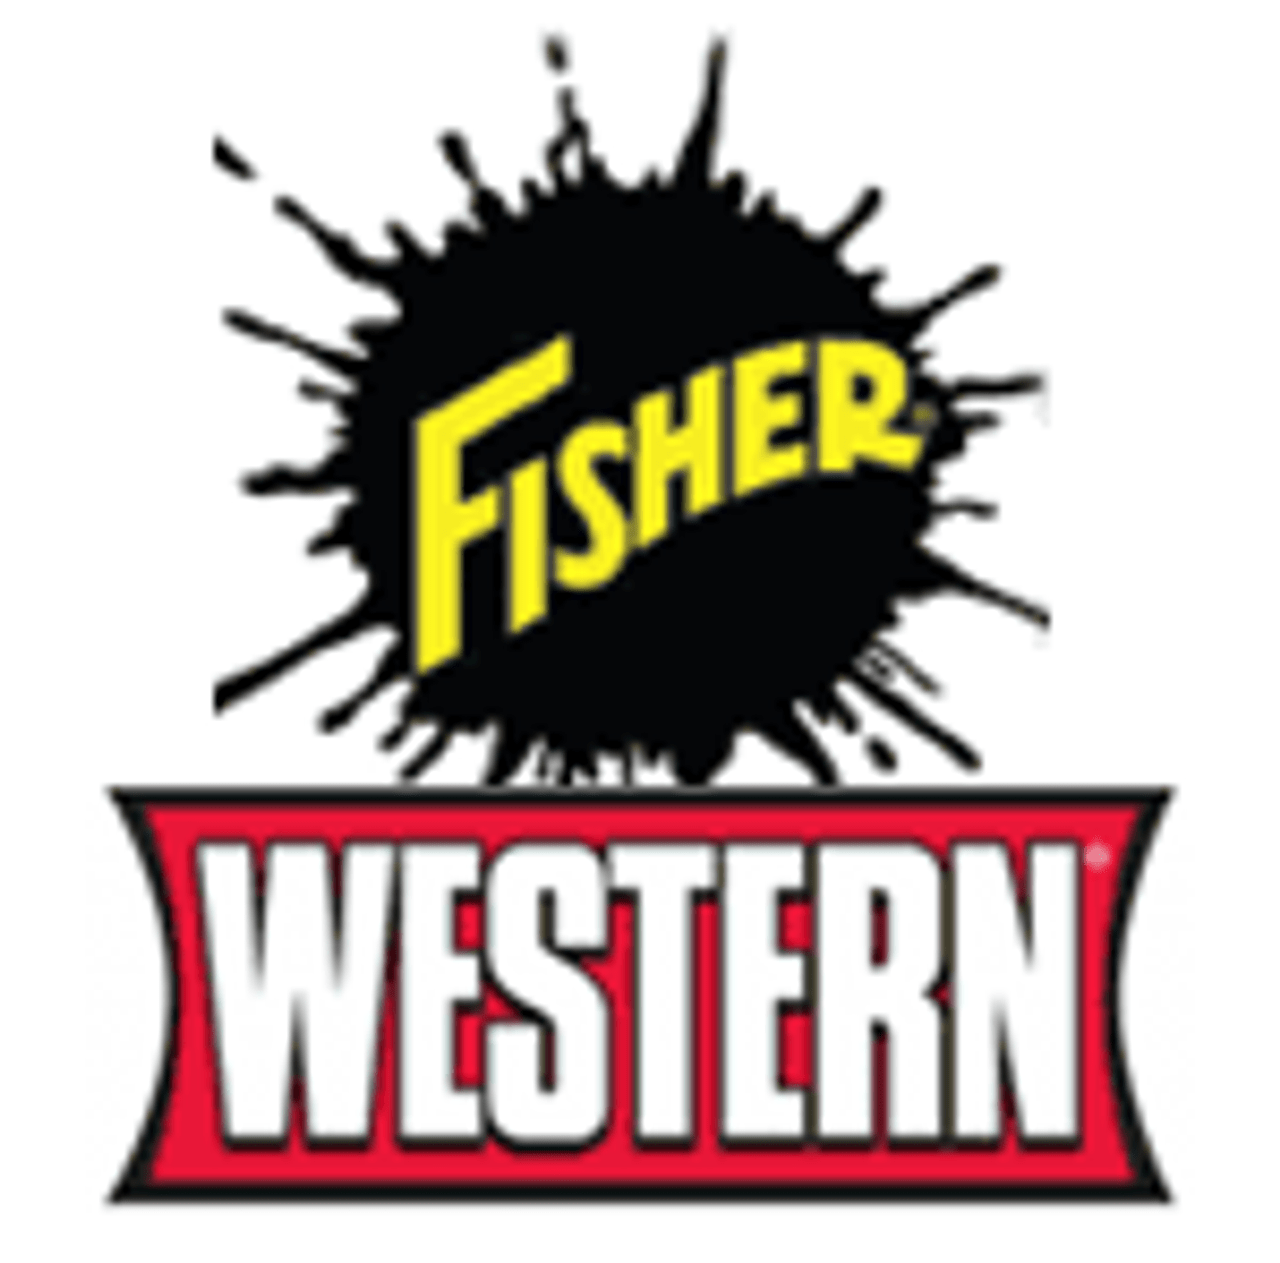 83845 FISHER - WESTERN CAST IRON SHOE KIT HS